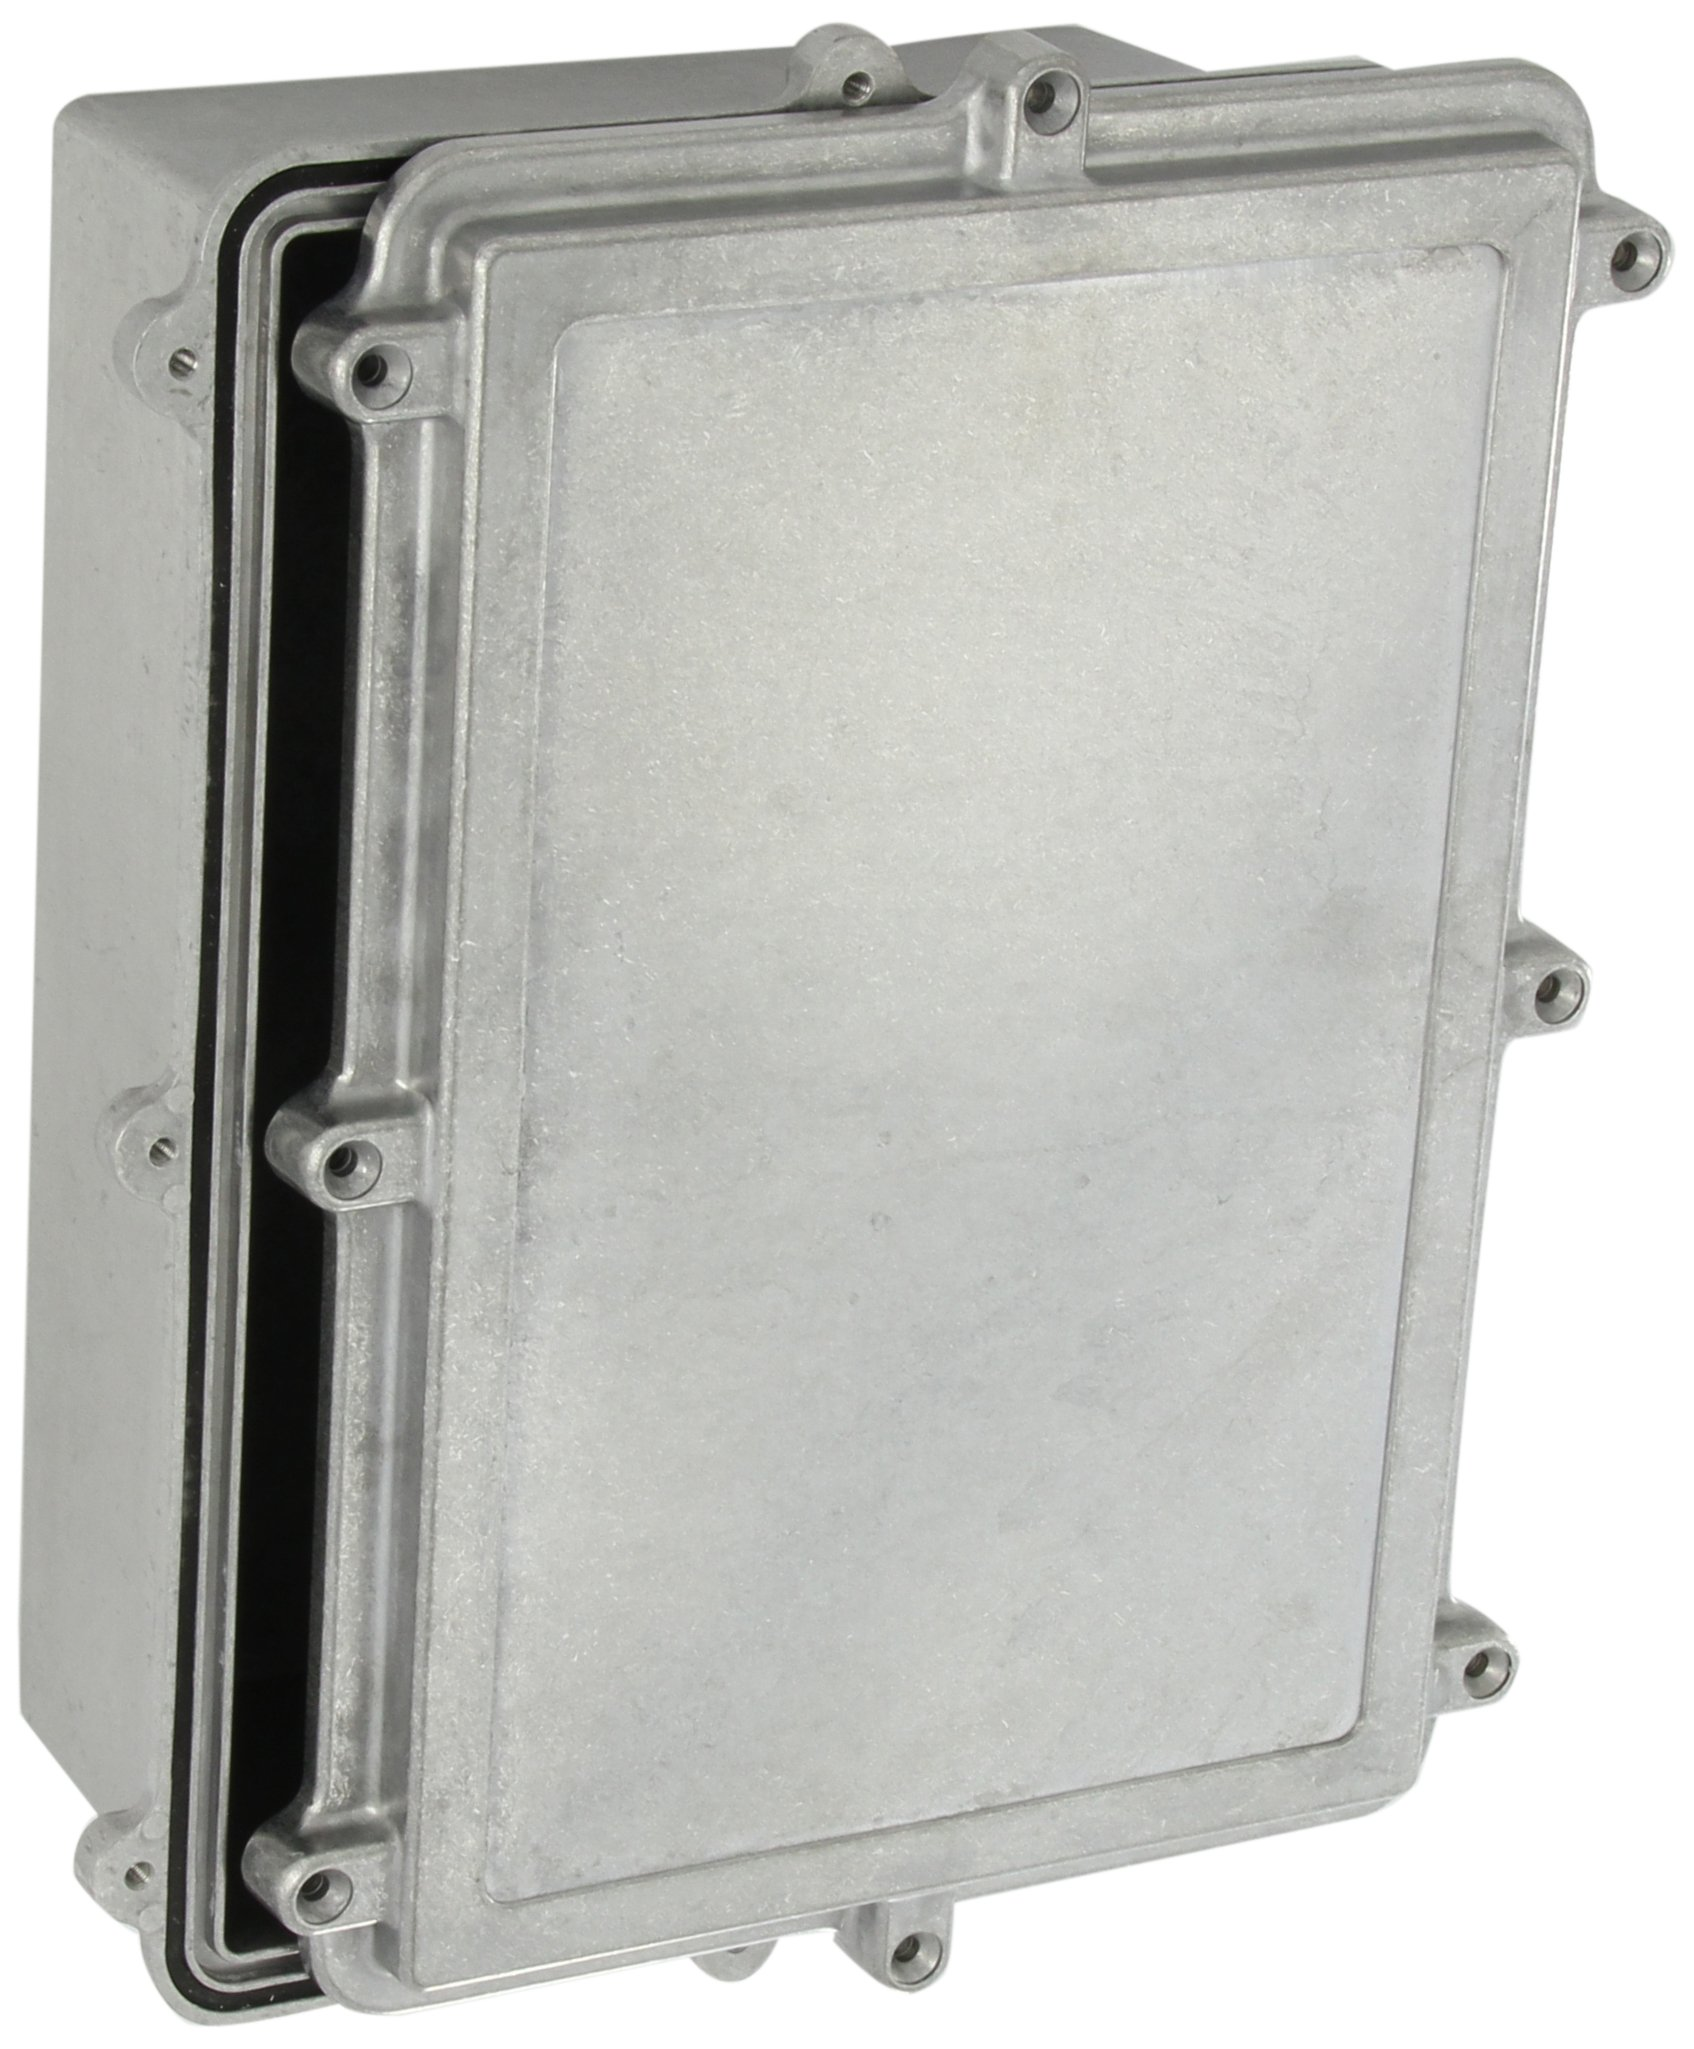 BUD Industries Series IP67 Aluminum NEMA Die Cast Box, 10-19/64'' Length x 7-5/32'' Width x 3-17/32'' Depth, Natural Finish